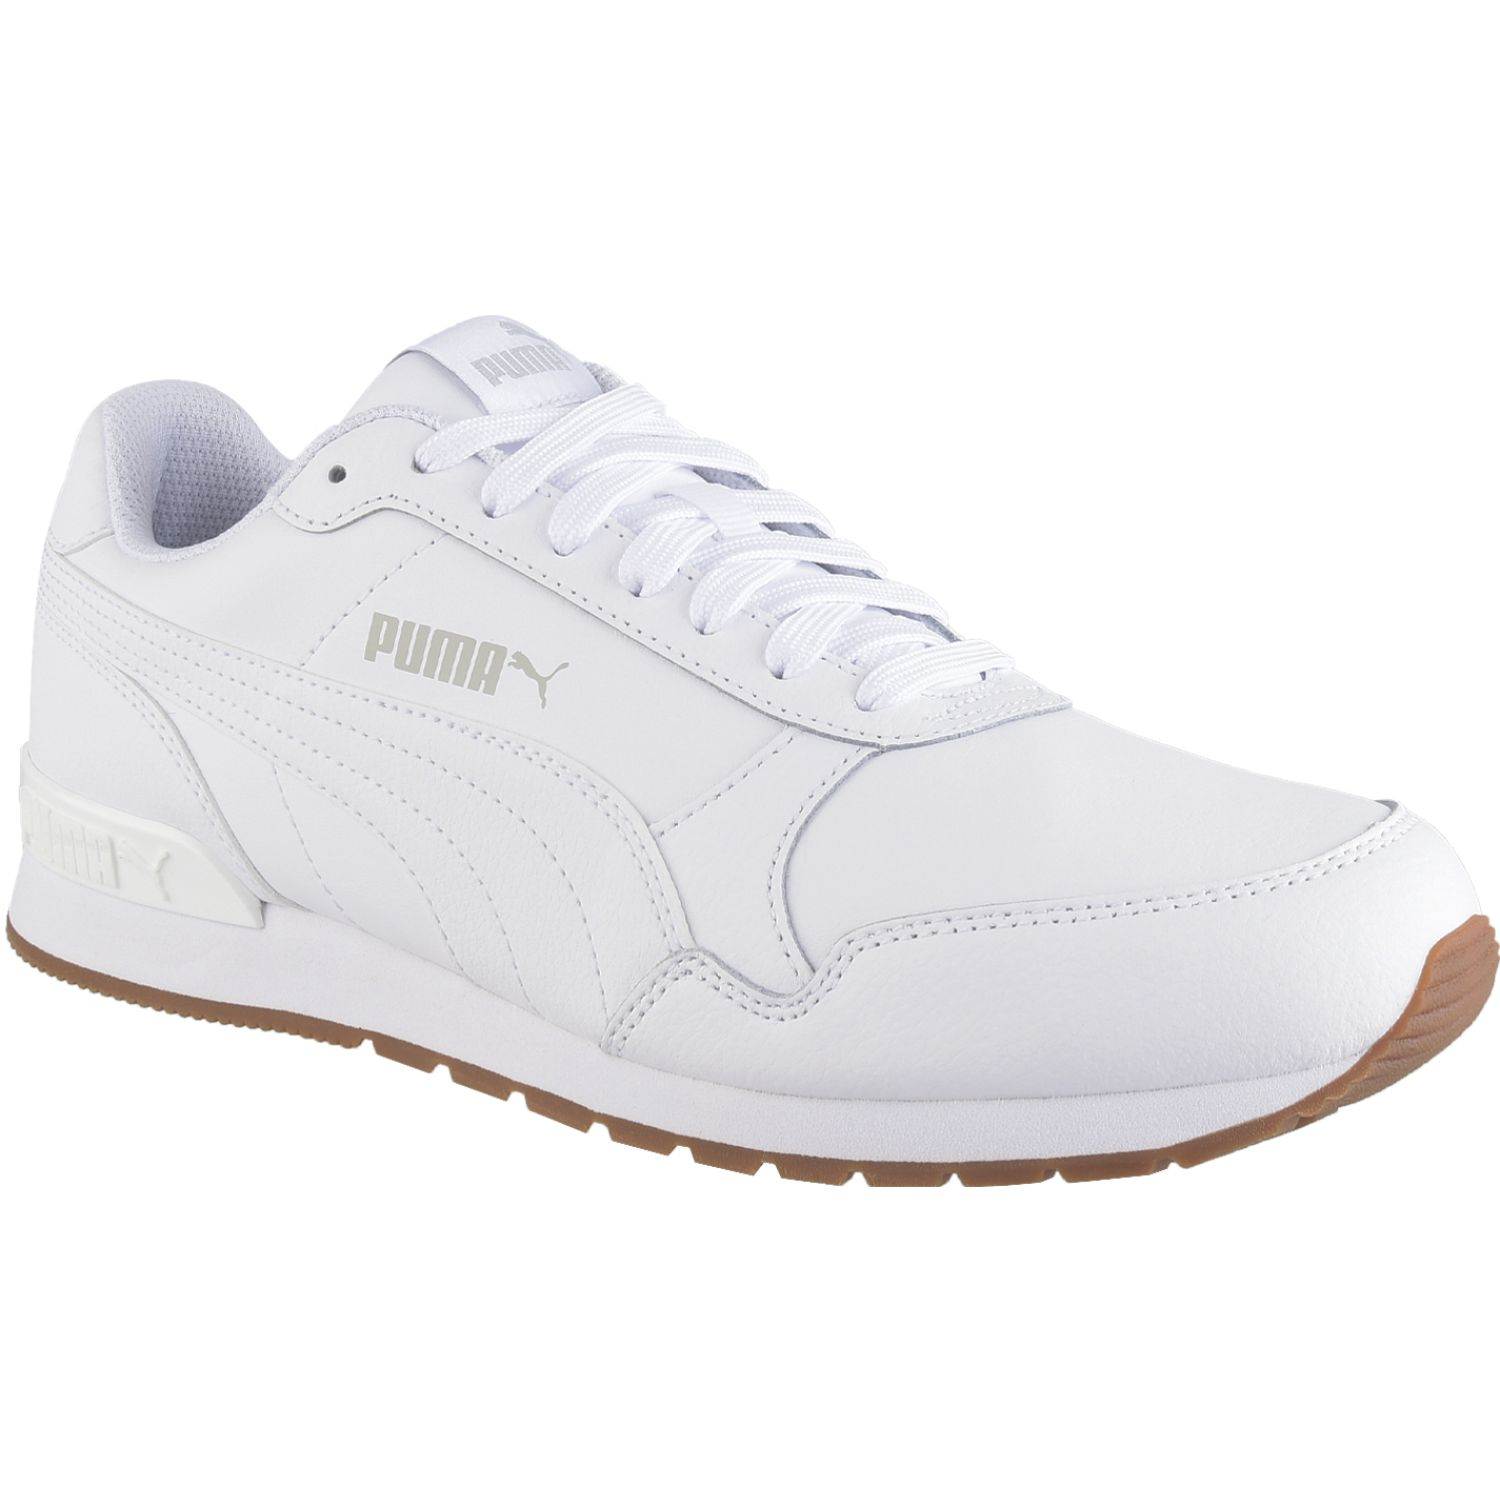 Puma ST Runner v2 Full L Blanco Walking | platanitos.com